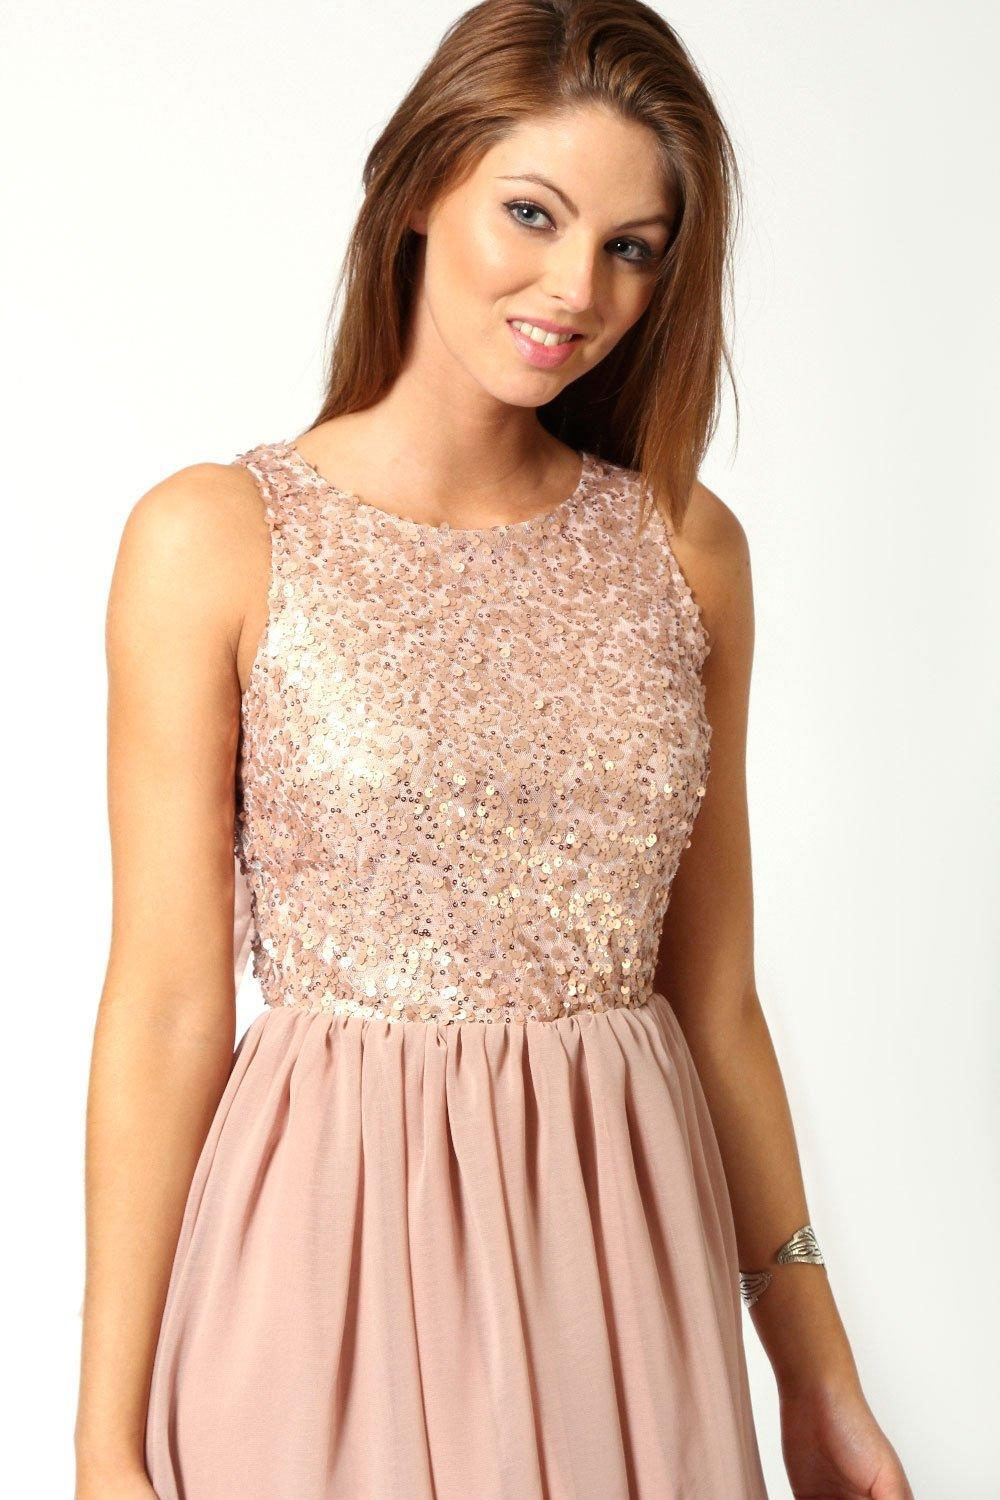 f9af76cca95c Boohoo - Pink Sequin Top Open Back Chiffon Dip Hem Dress - Lyst. View  fullscreen